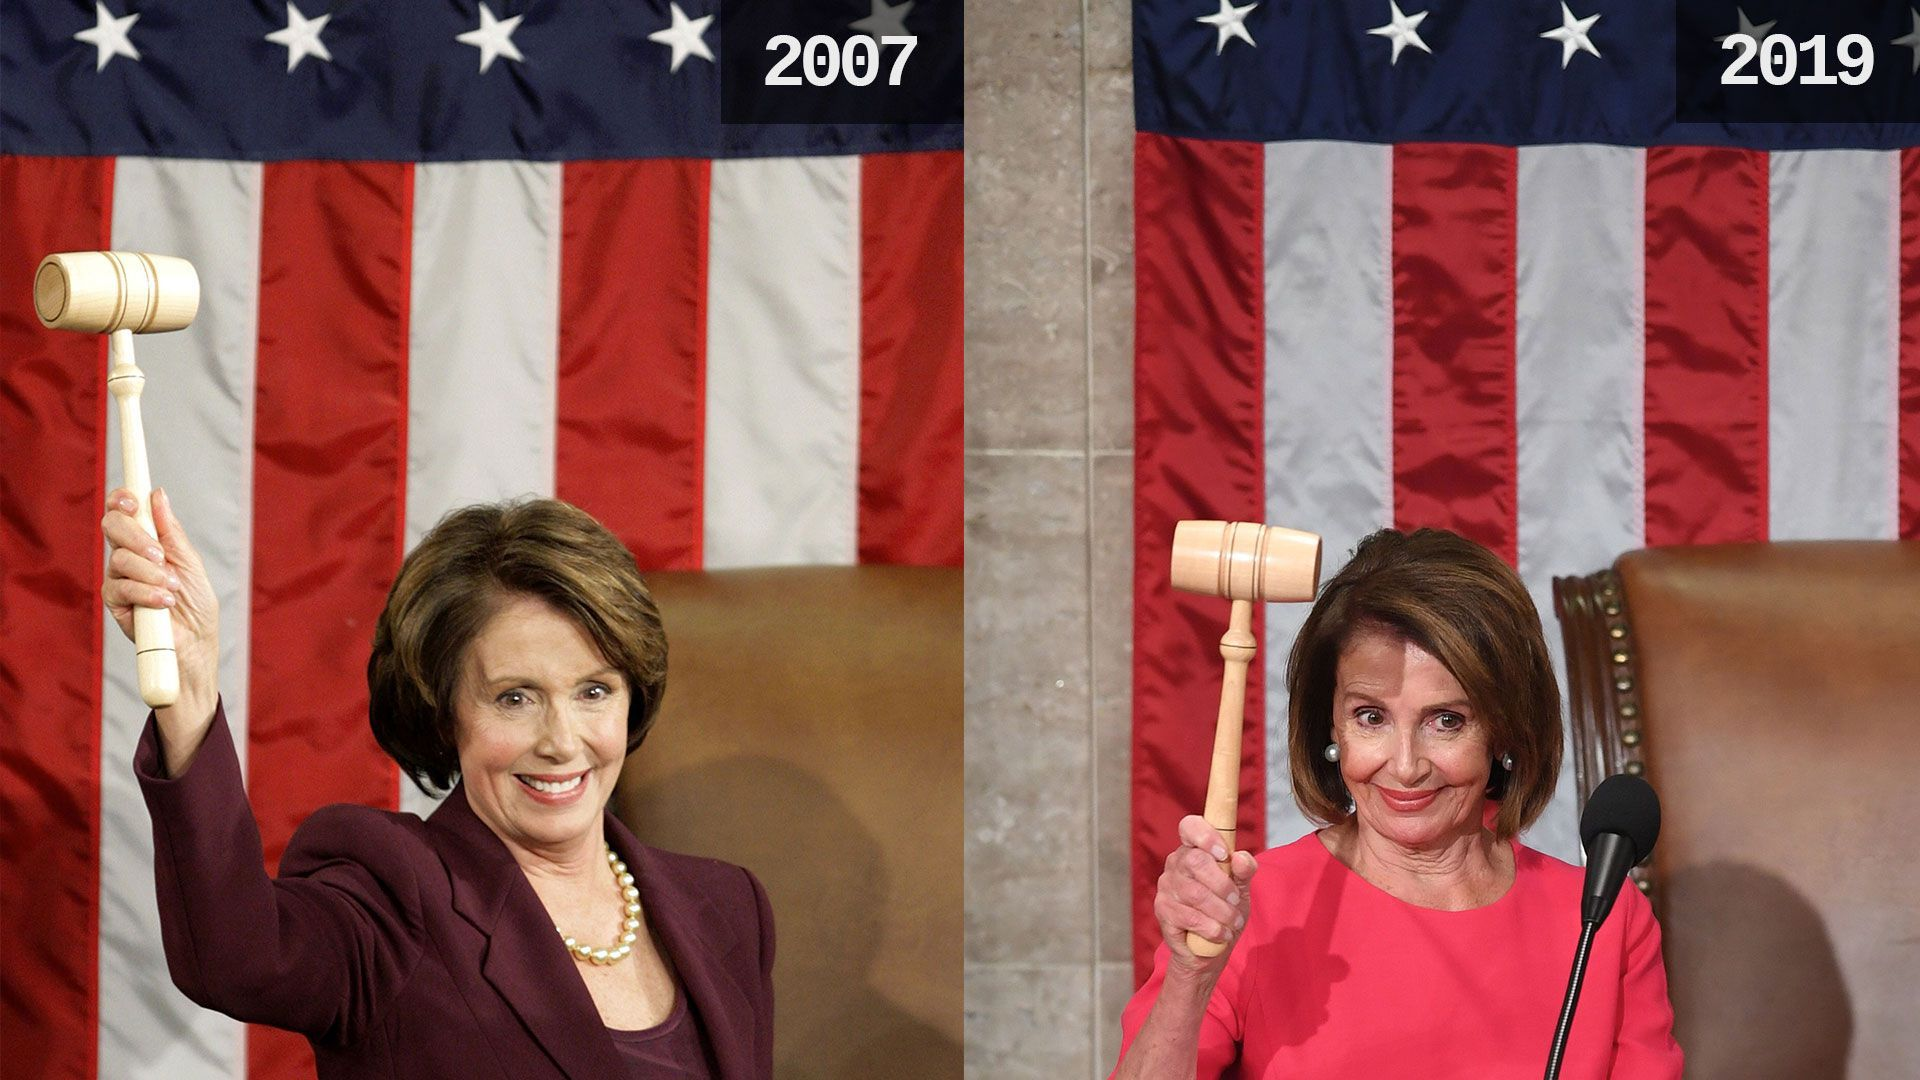 Nancy Pelosi in 2007 and 2018